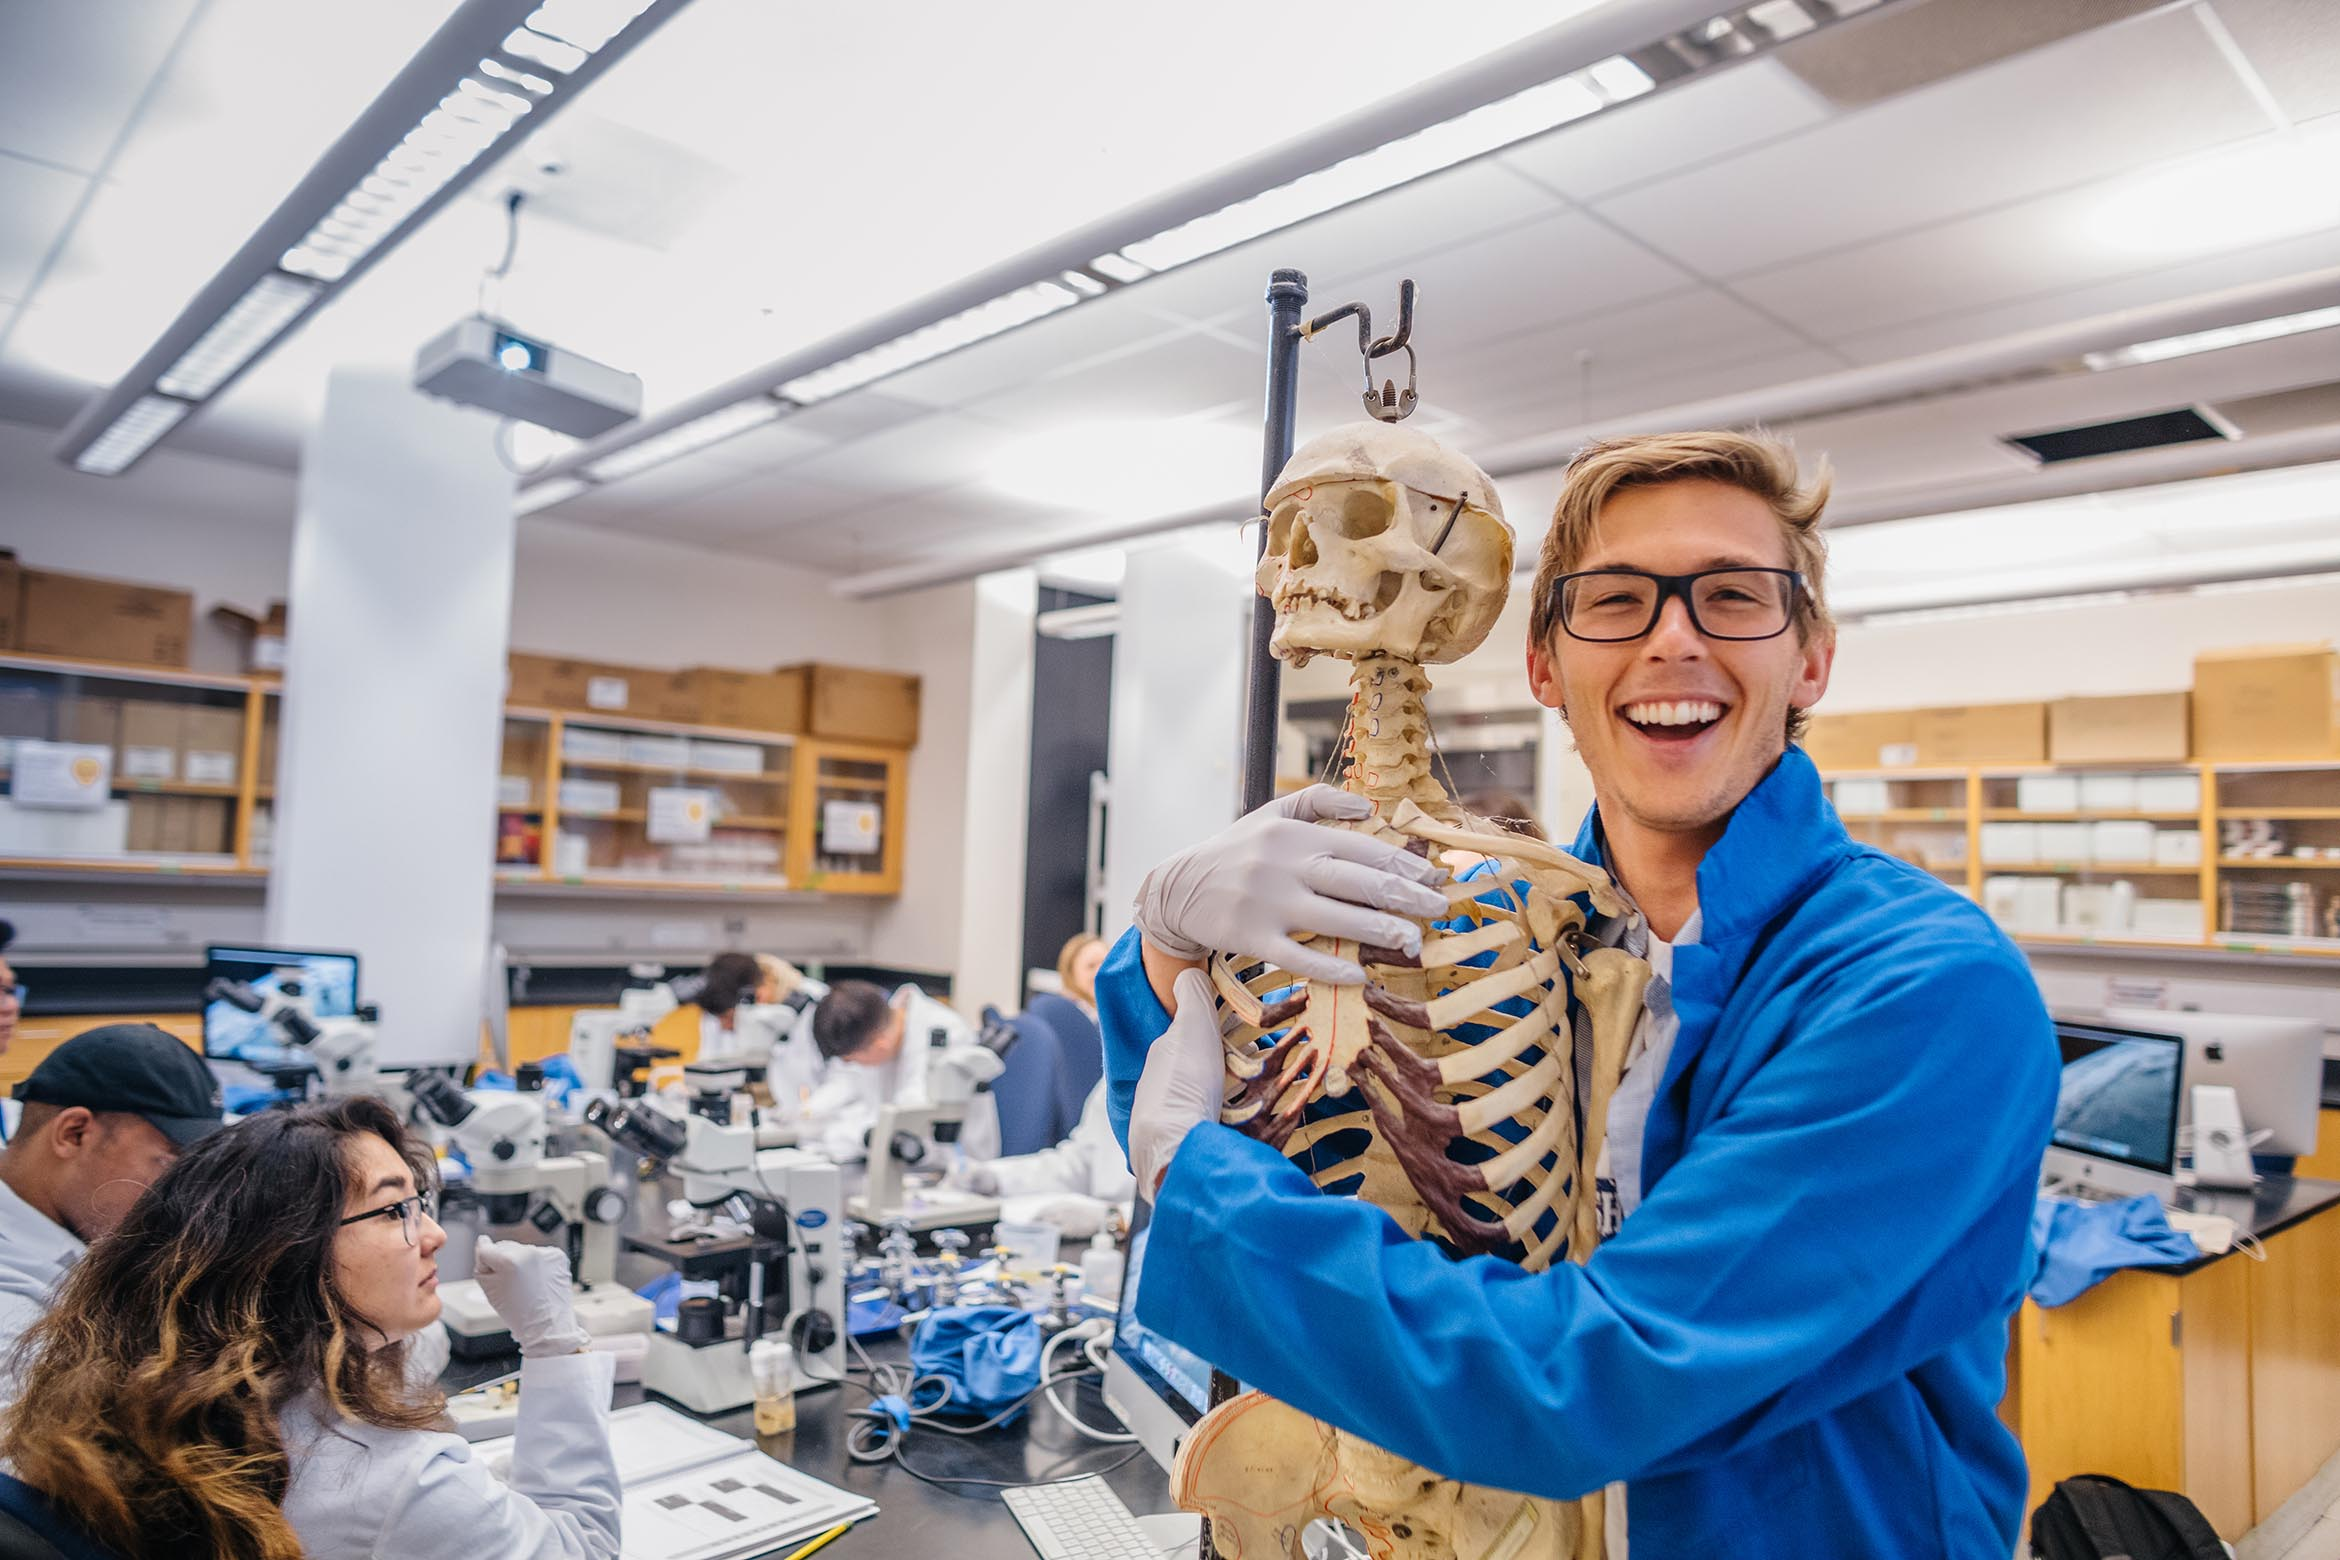 This is a student in a lab coat hugging a skeleton.